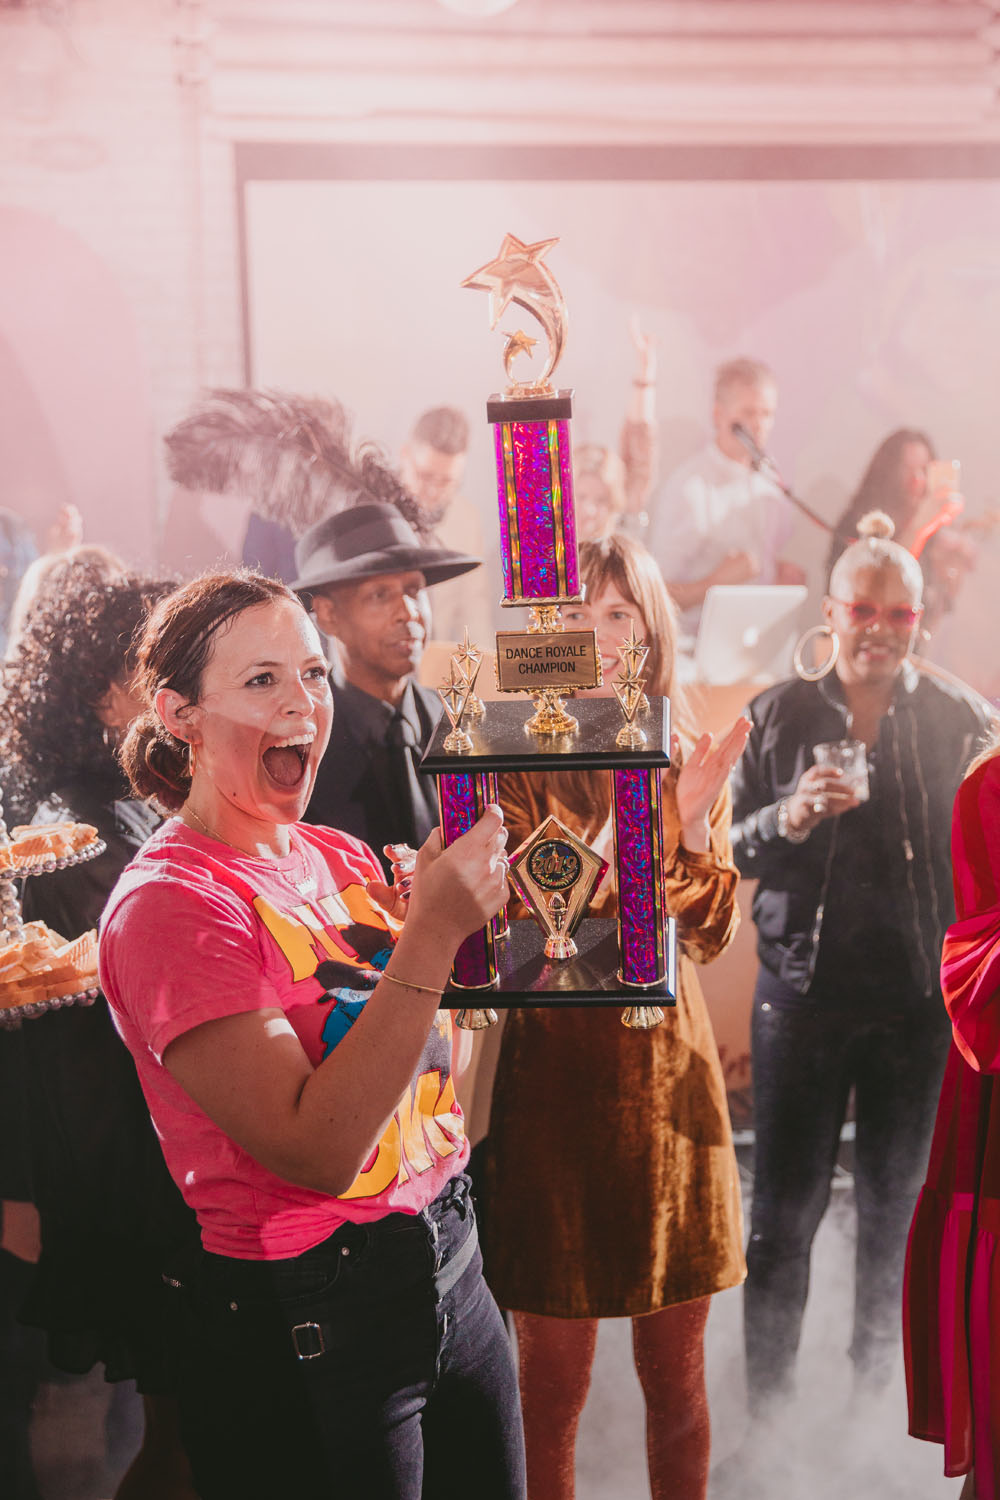 30-dance-royale-office-party-champion.jpg